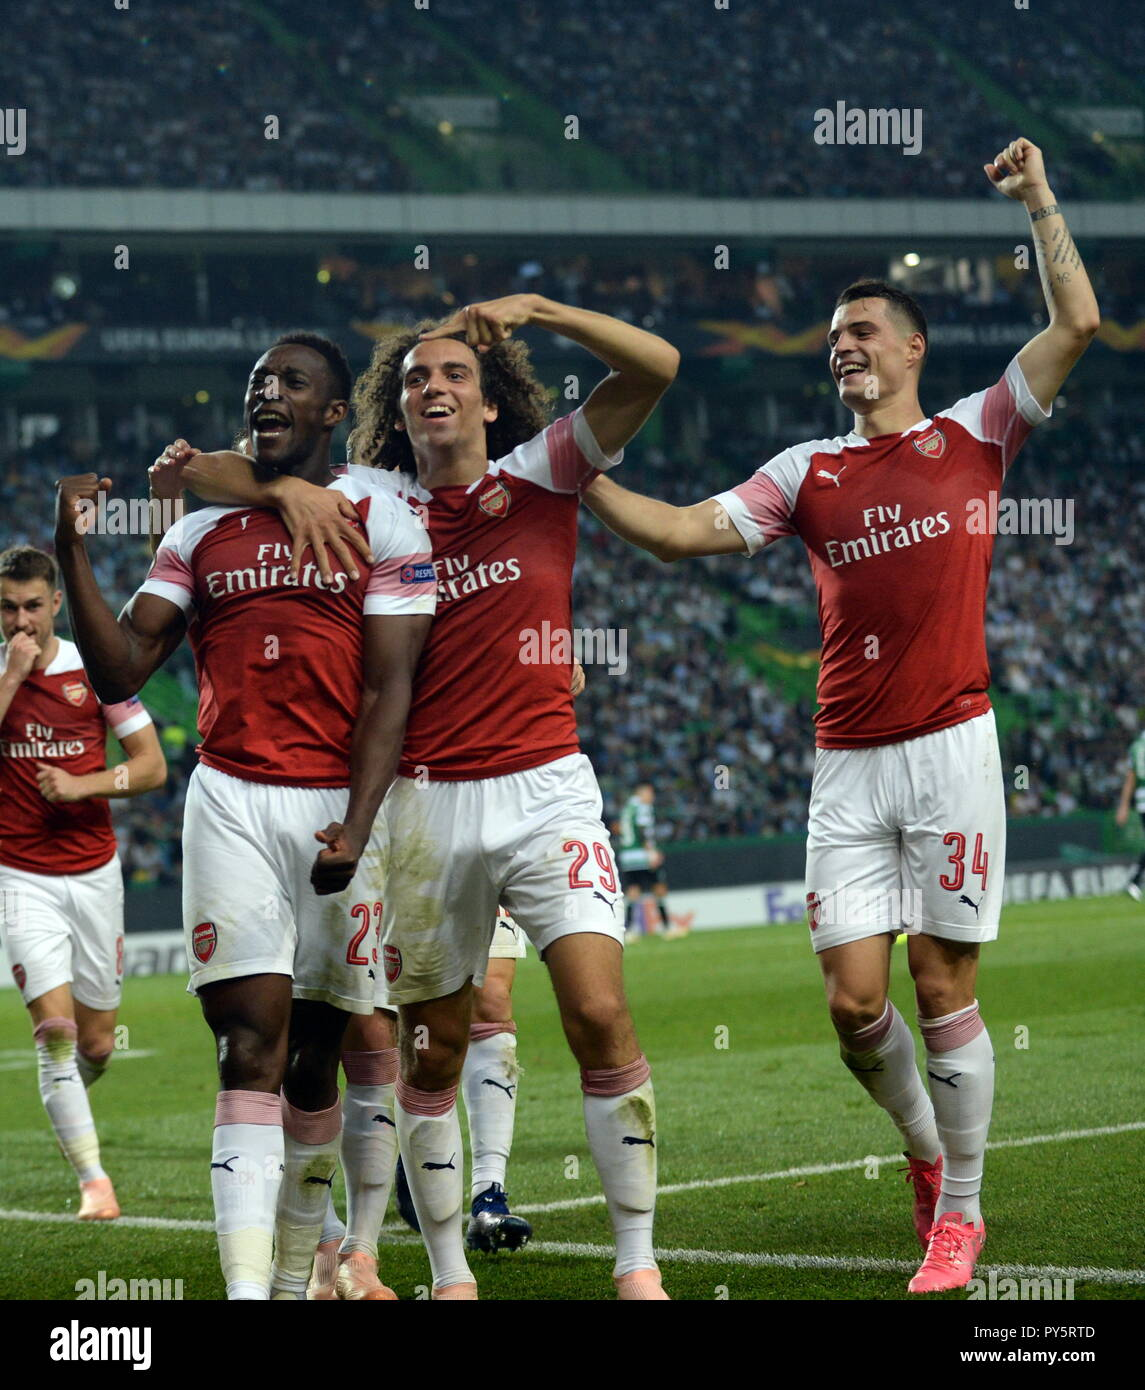 Lisbon, Portugal. 25th Oct, 2018. Players of Arsenal celebrate during the Europa League Group E third round soccer match between Sporting CP and Arsenal FC at Jose Alvalade Stadium in Lisbon, Portugal, on Oct. 25, 2018. Arsenal won 1-0. Credit: Zhang Liyun/Xinhua/Alamy Live News Stock Photo